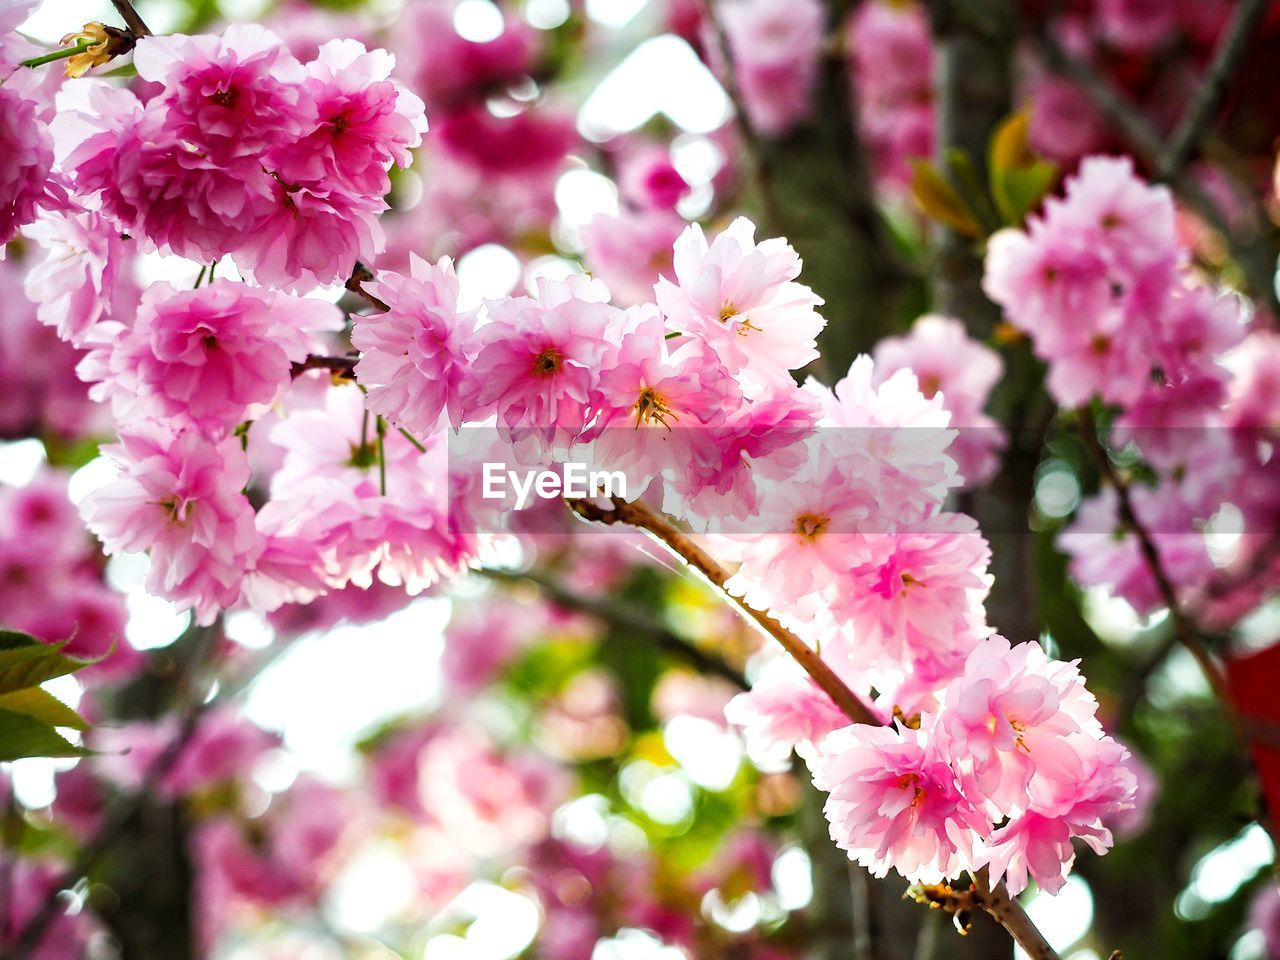 flower, flowering plant, plant, freshness, vulnerability, fragility, pink color, growth, beauty in nature, petal, close-up, flower head, inflorescence, blossom, springtime, day, tree, botany, branch, focus on foreground, no people, outdoors, pollen, cherry blossom, spring, cherry tree